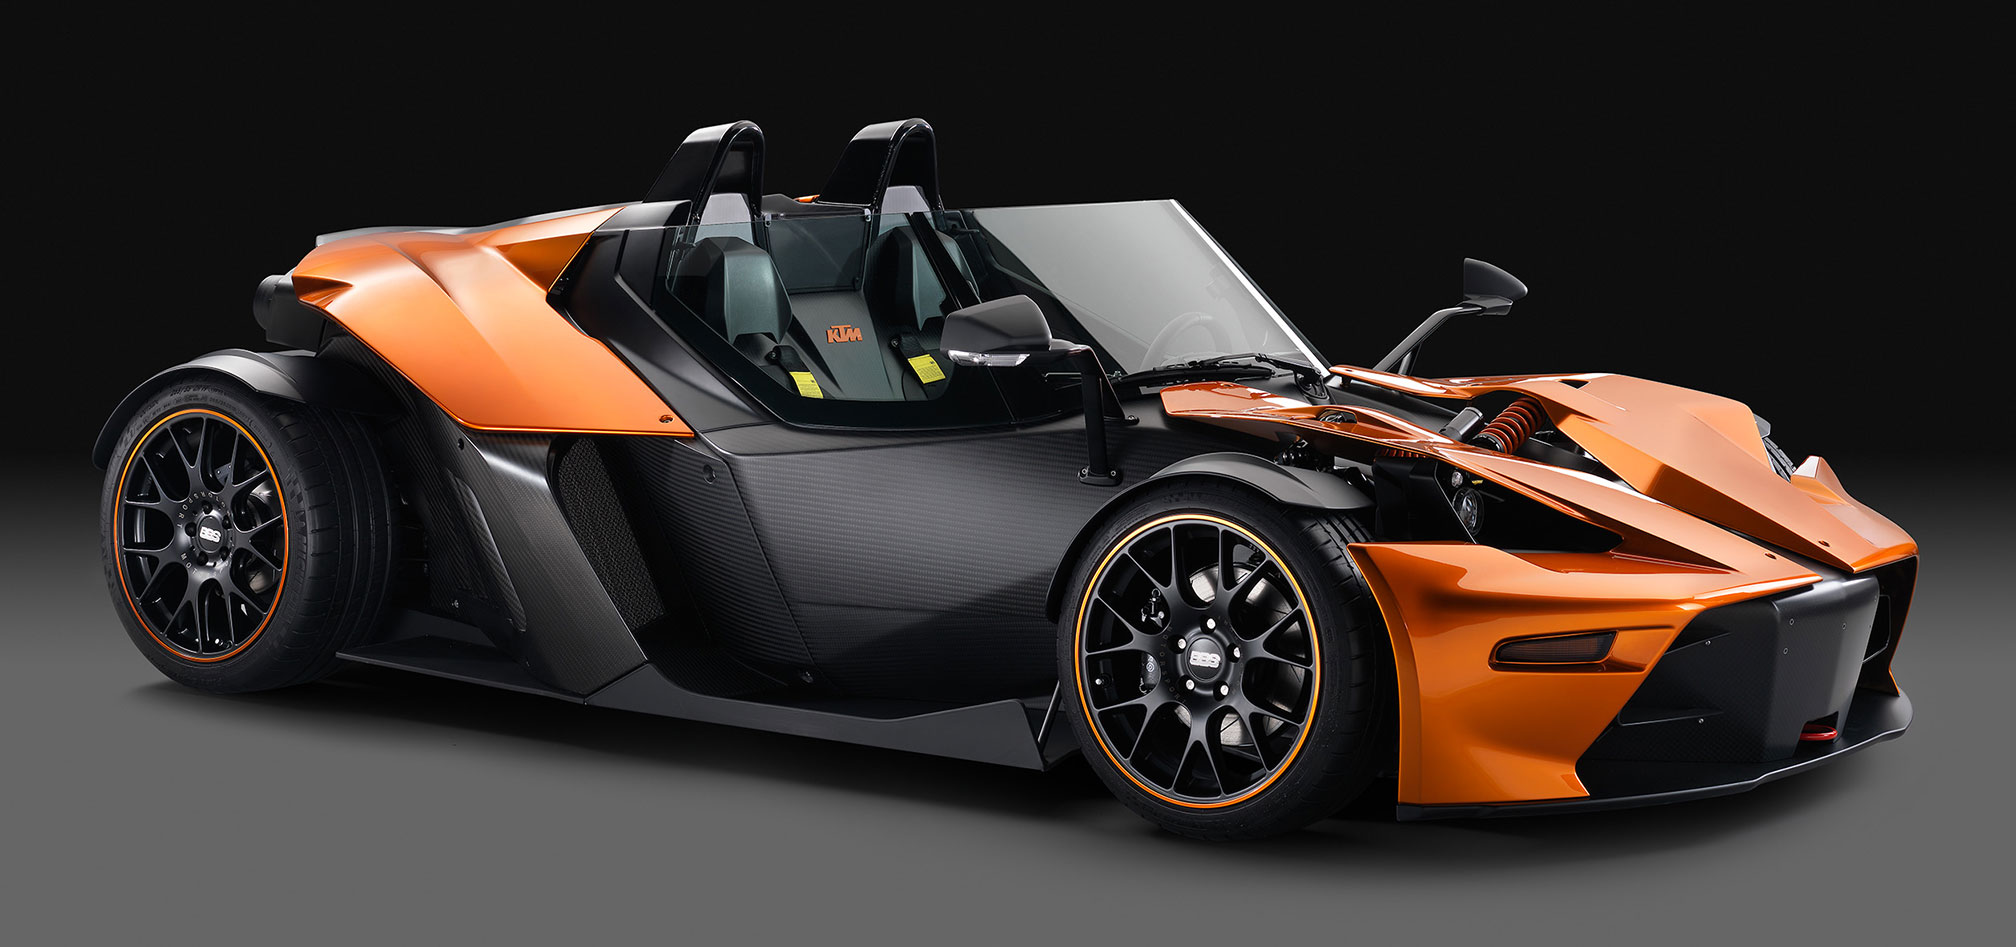 All Types ktm x-bow specs : 2016 KTM X-Bow GT Review